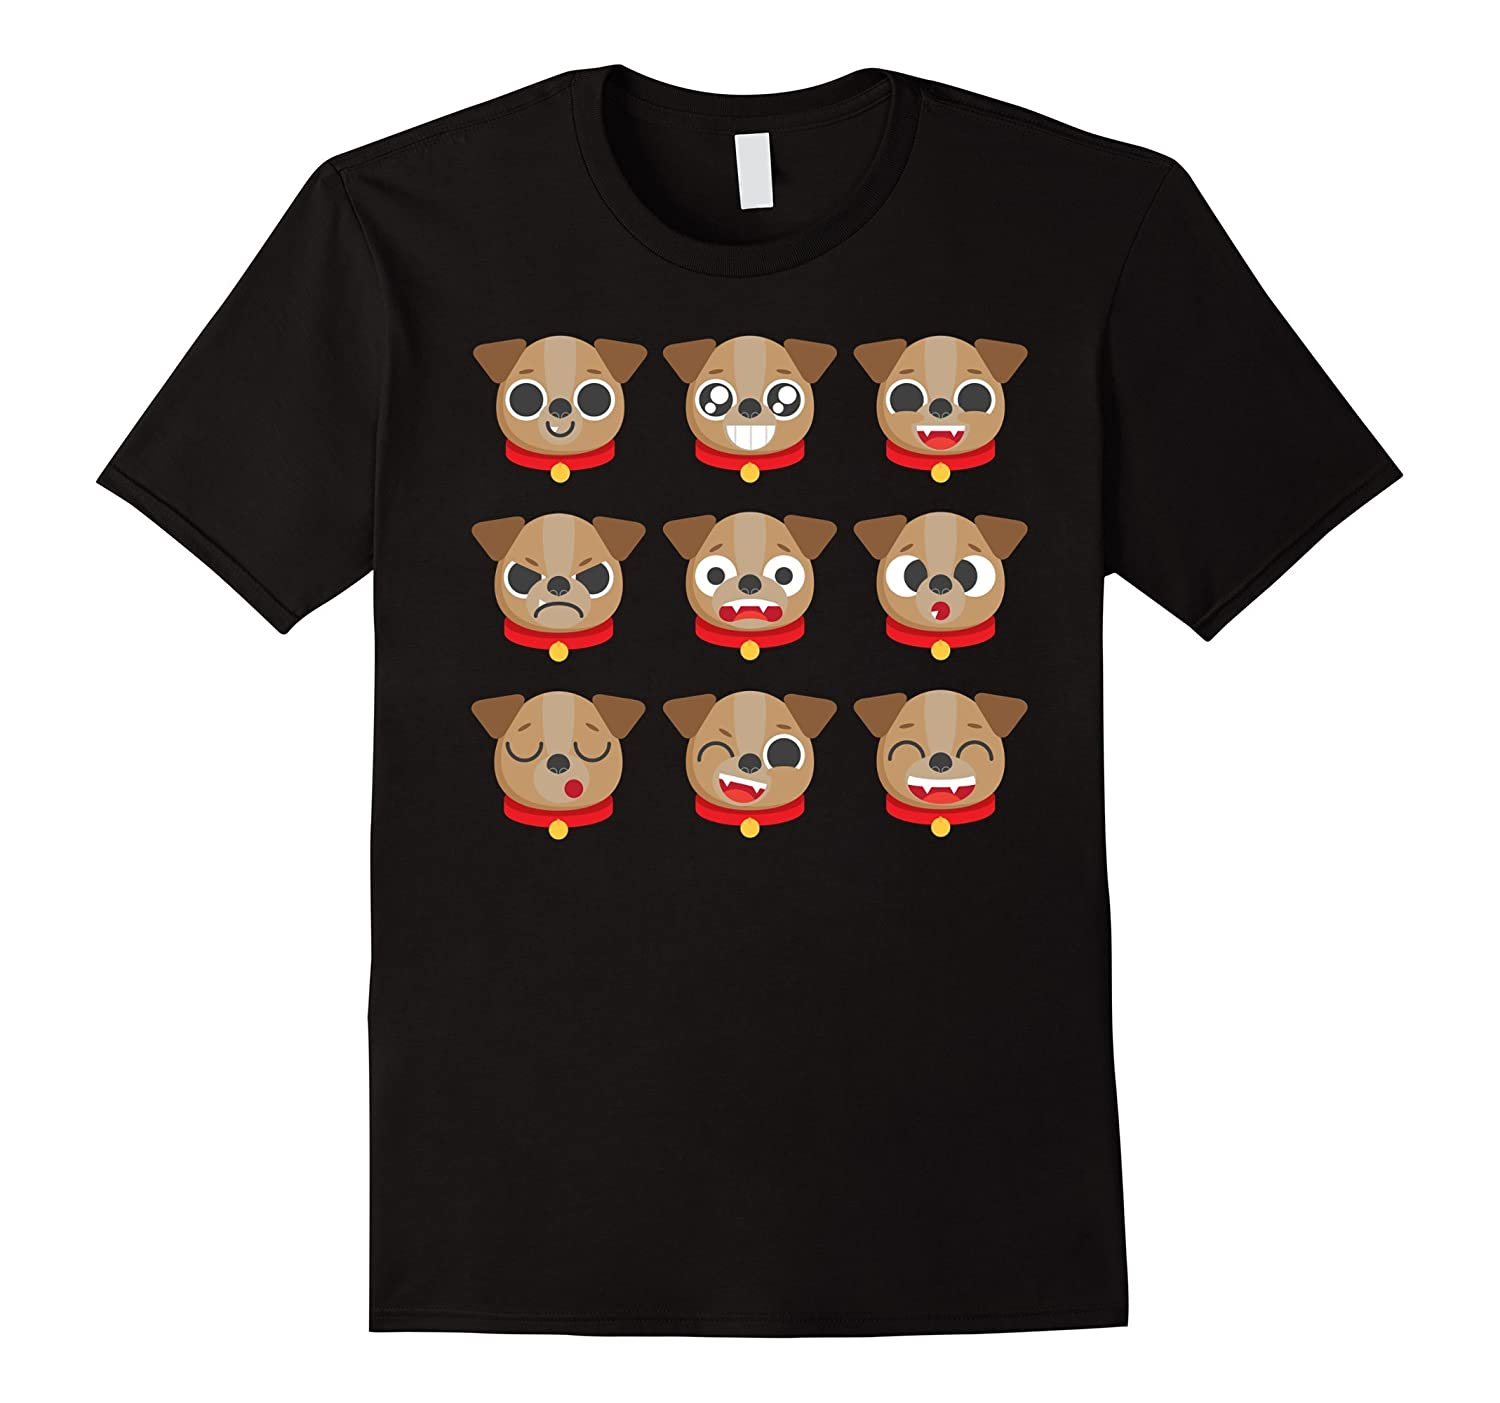 Awesome Dog Emoticon T-shirt For Fun Cheap Costume Outfits-FL